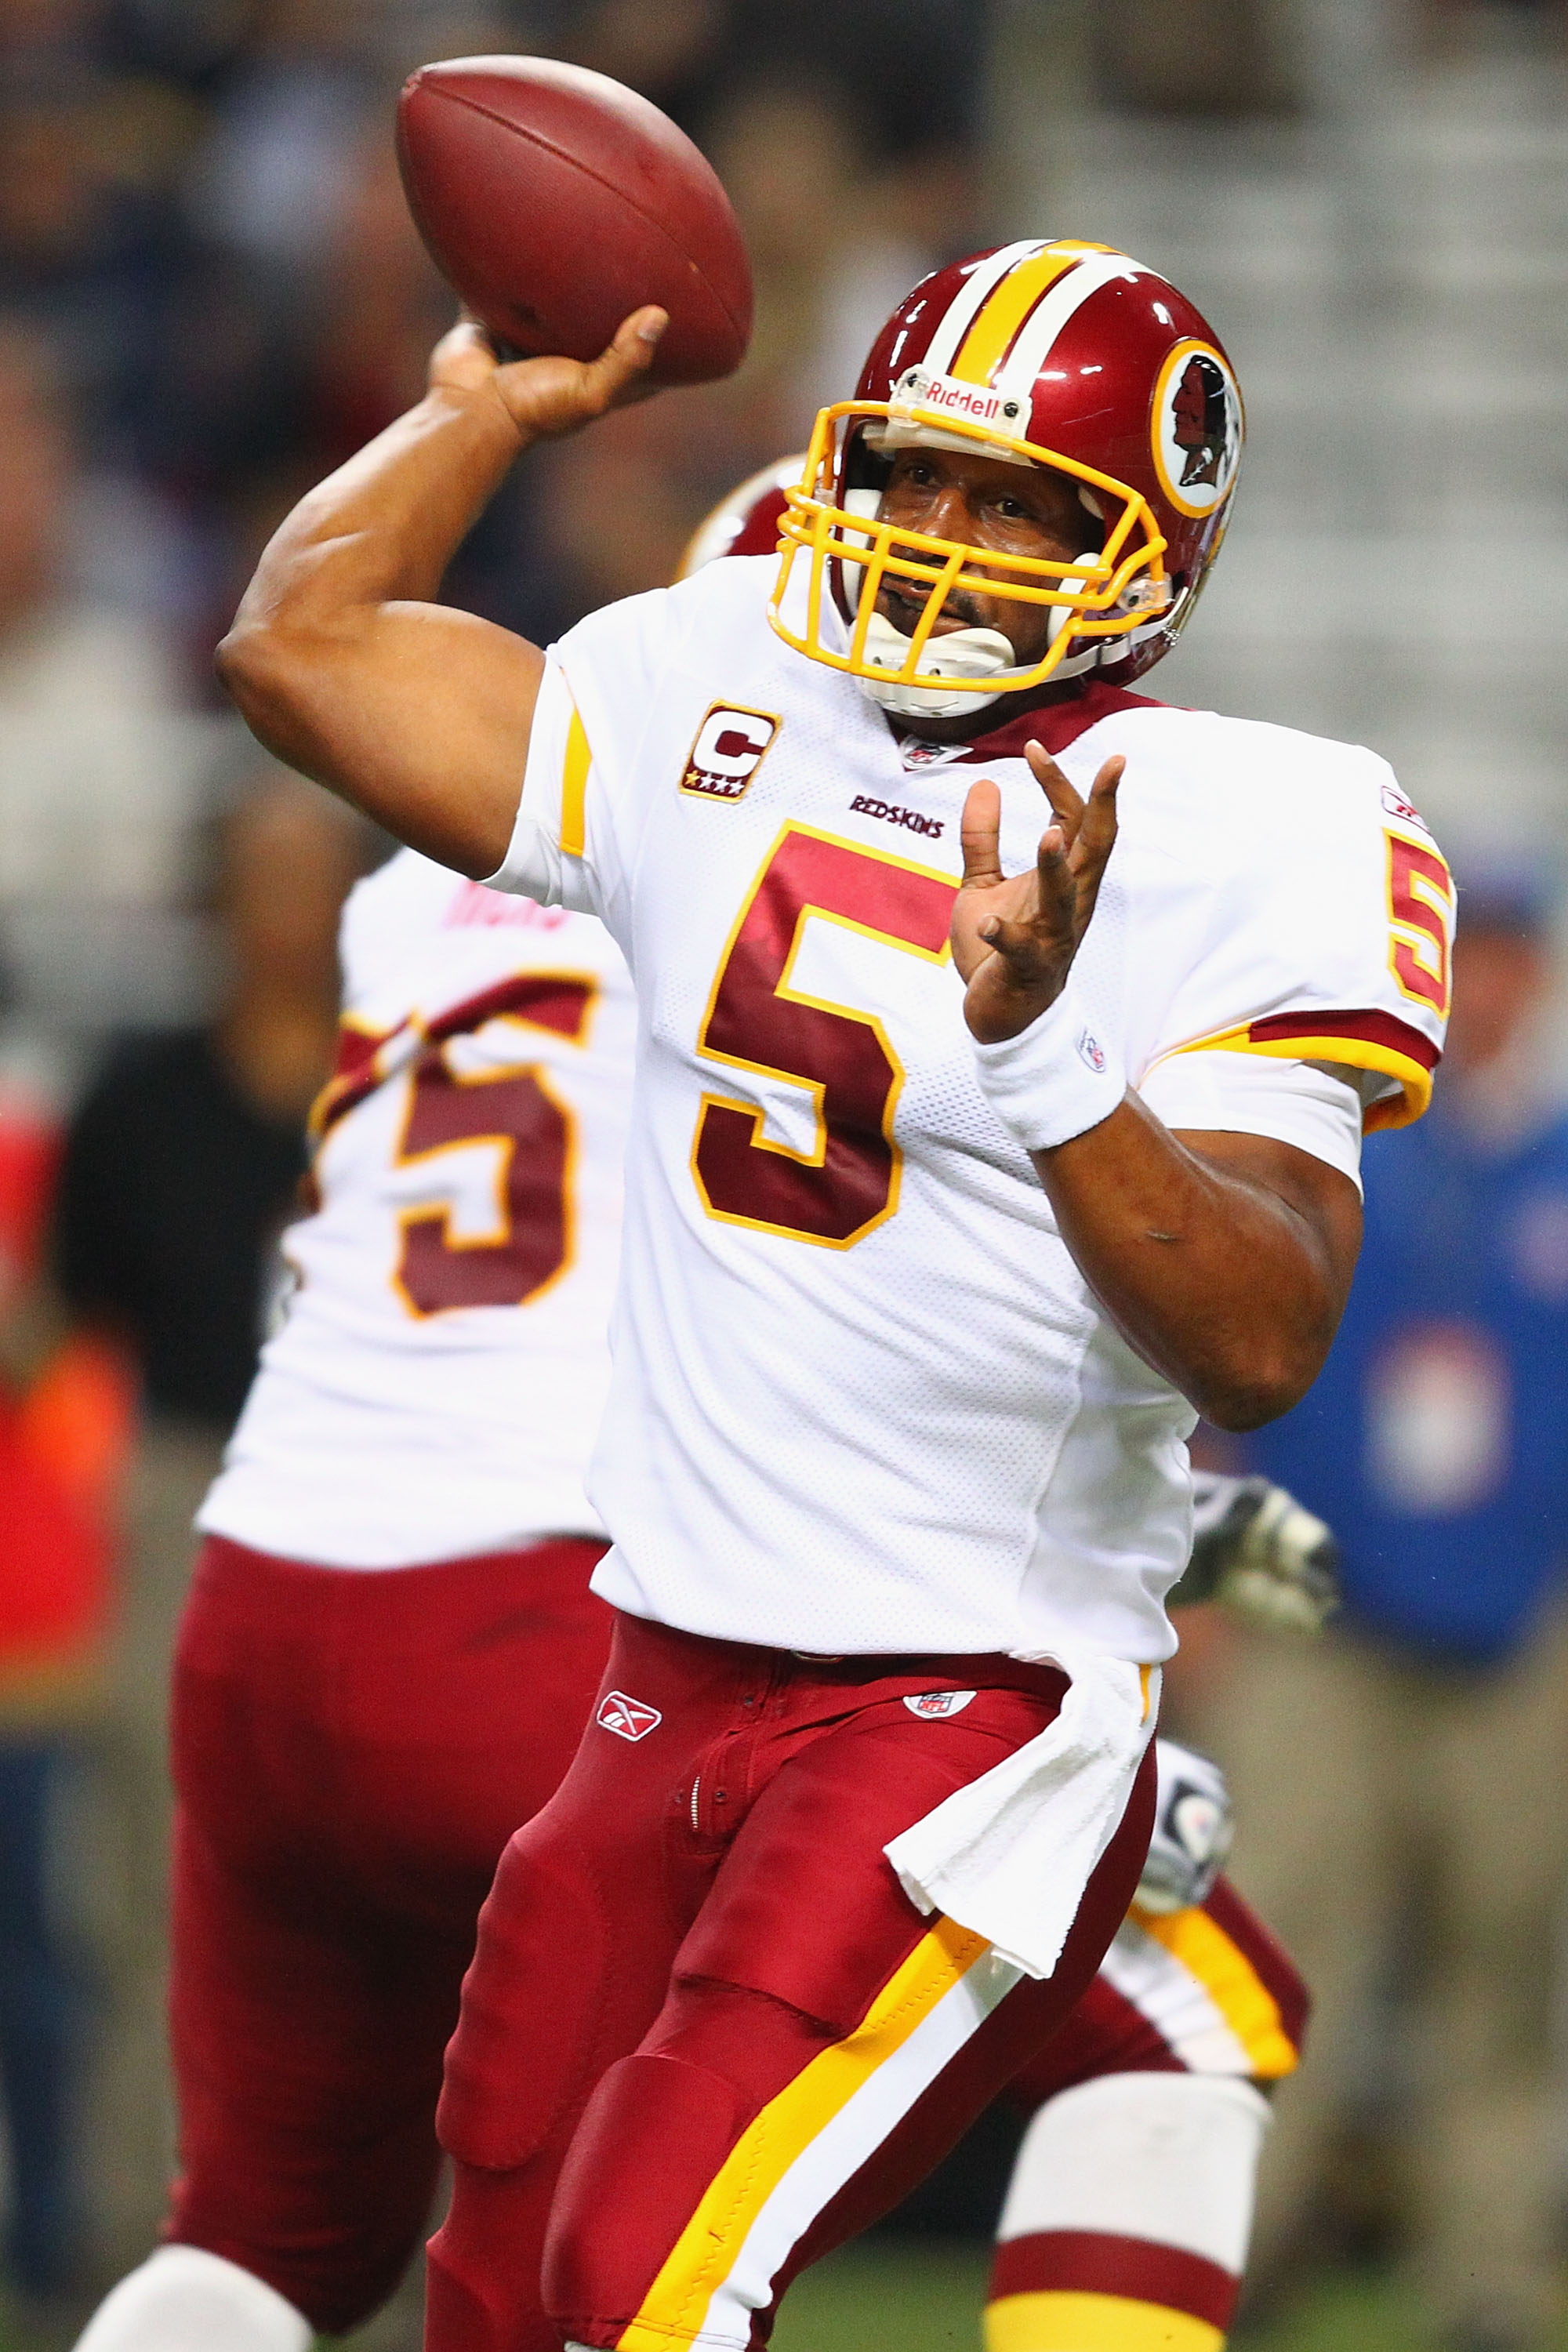 ST. LOUIS - SEPTEMBER 26: Donavan McNabb #5 of the Washington Redskins passes against the St. Louis Rams at the Edward Jones Dome on September 26, 2010 in St. Louis, Missouri.  The Rams beat the Redskins 30-16.  (Photo by Dilip Vishwanat/Getty Images)